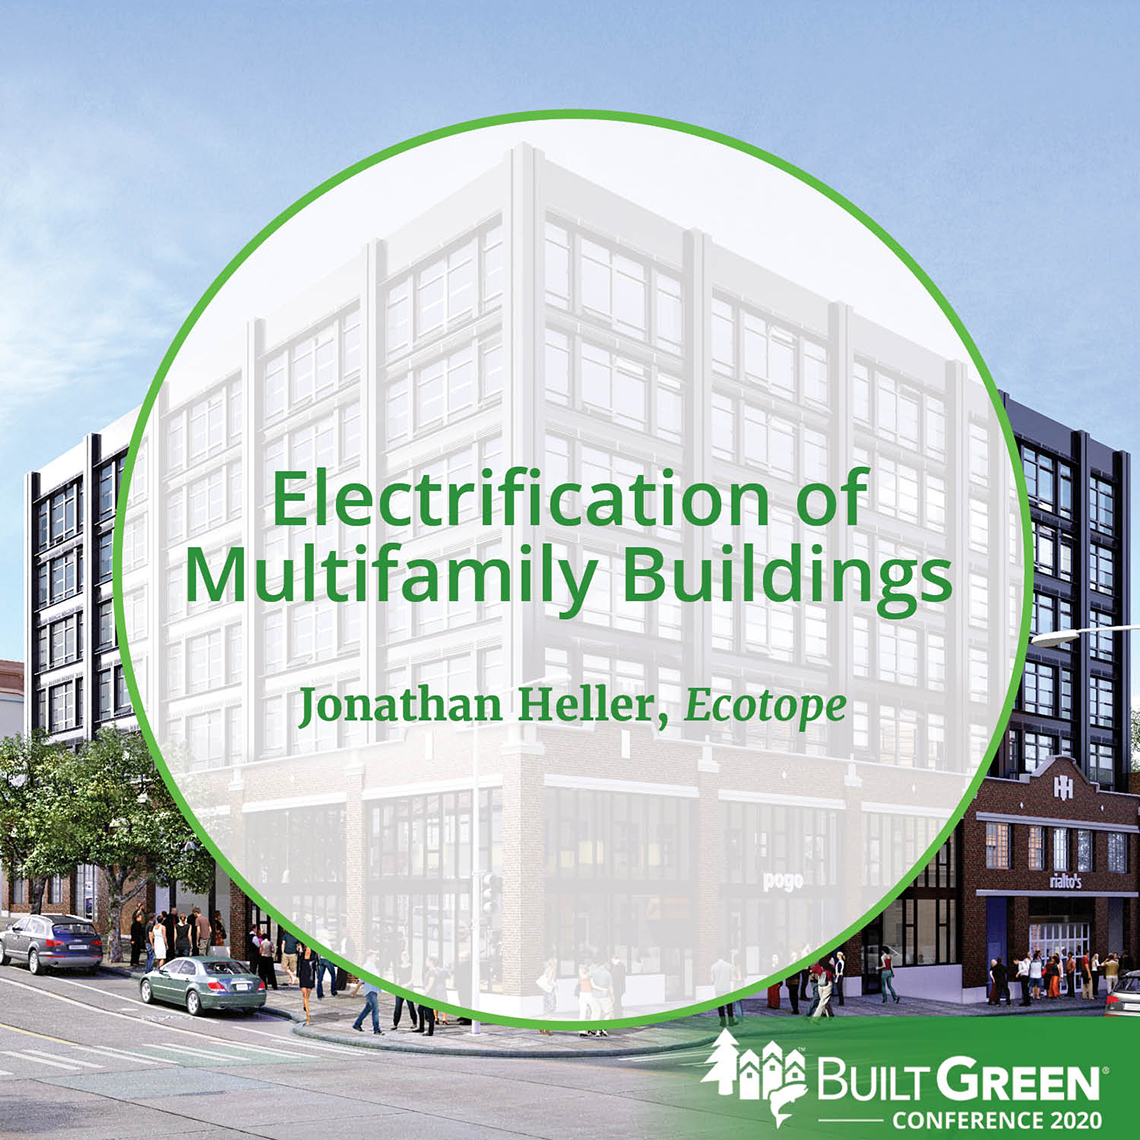 Built Green Conference Session: Electrification of Multifamily Buildings, featuring Jonathan Heller, Ecotope